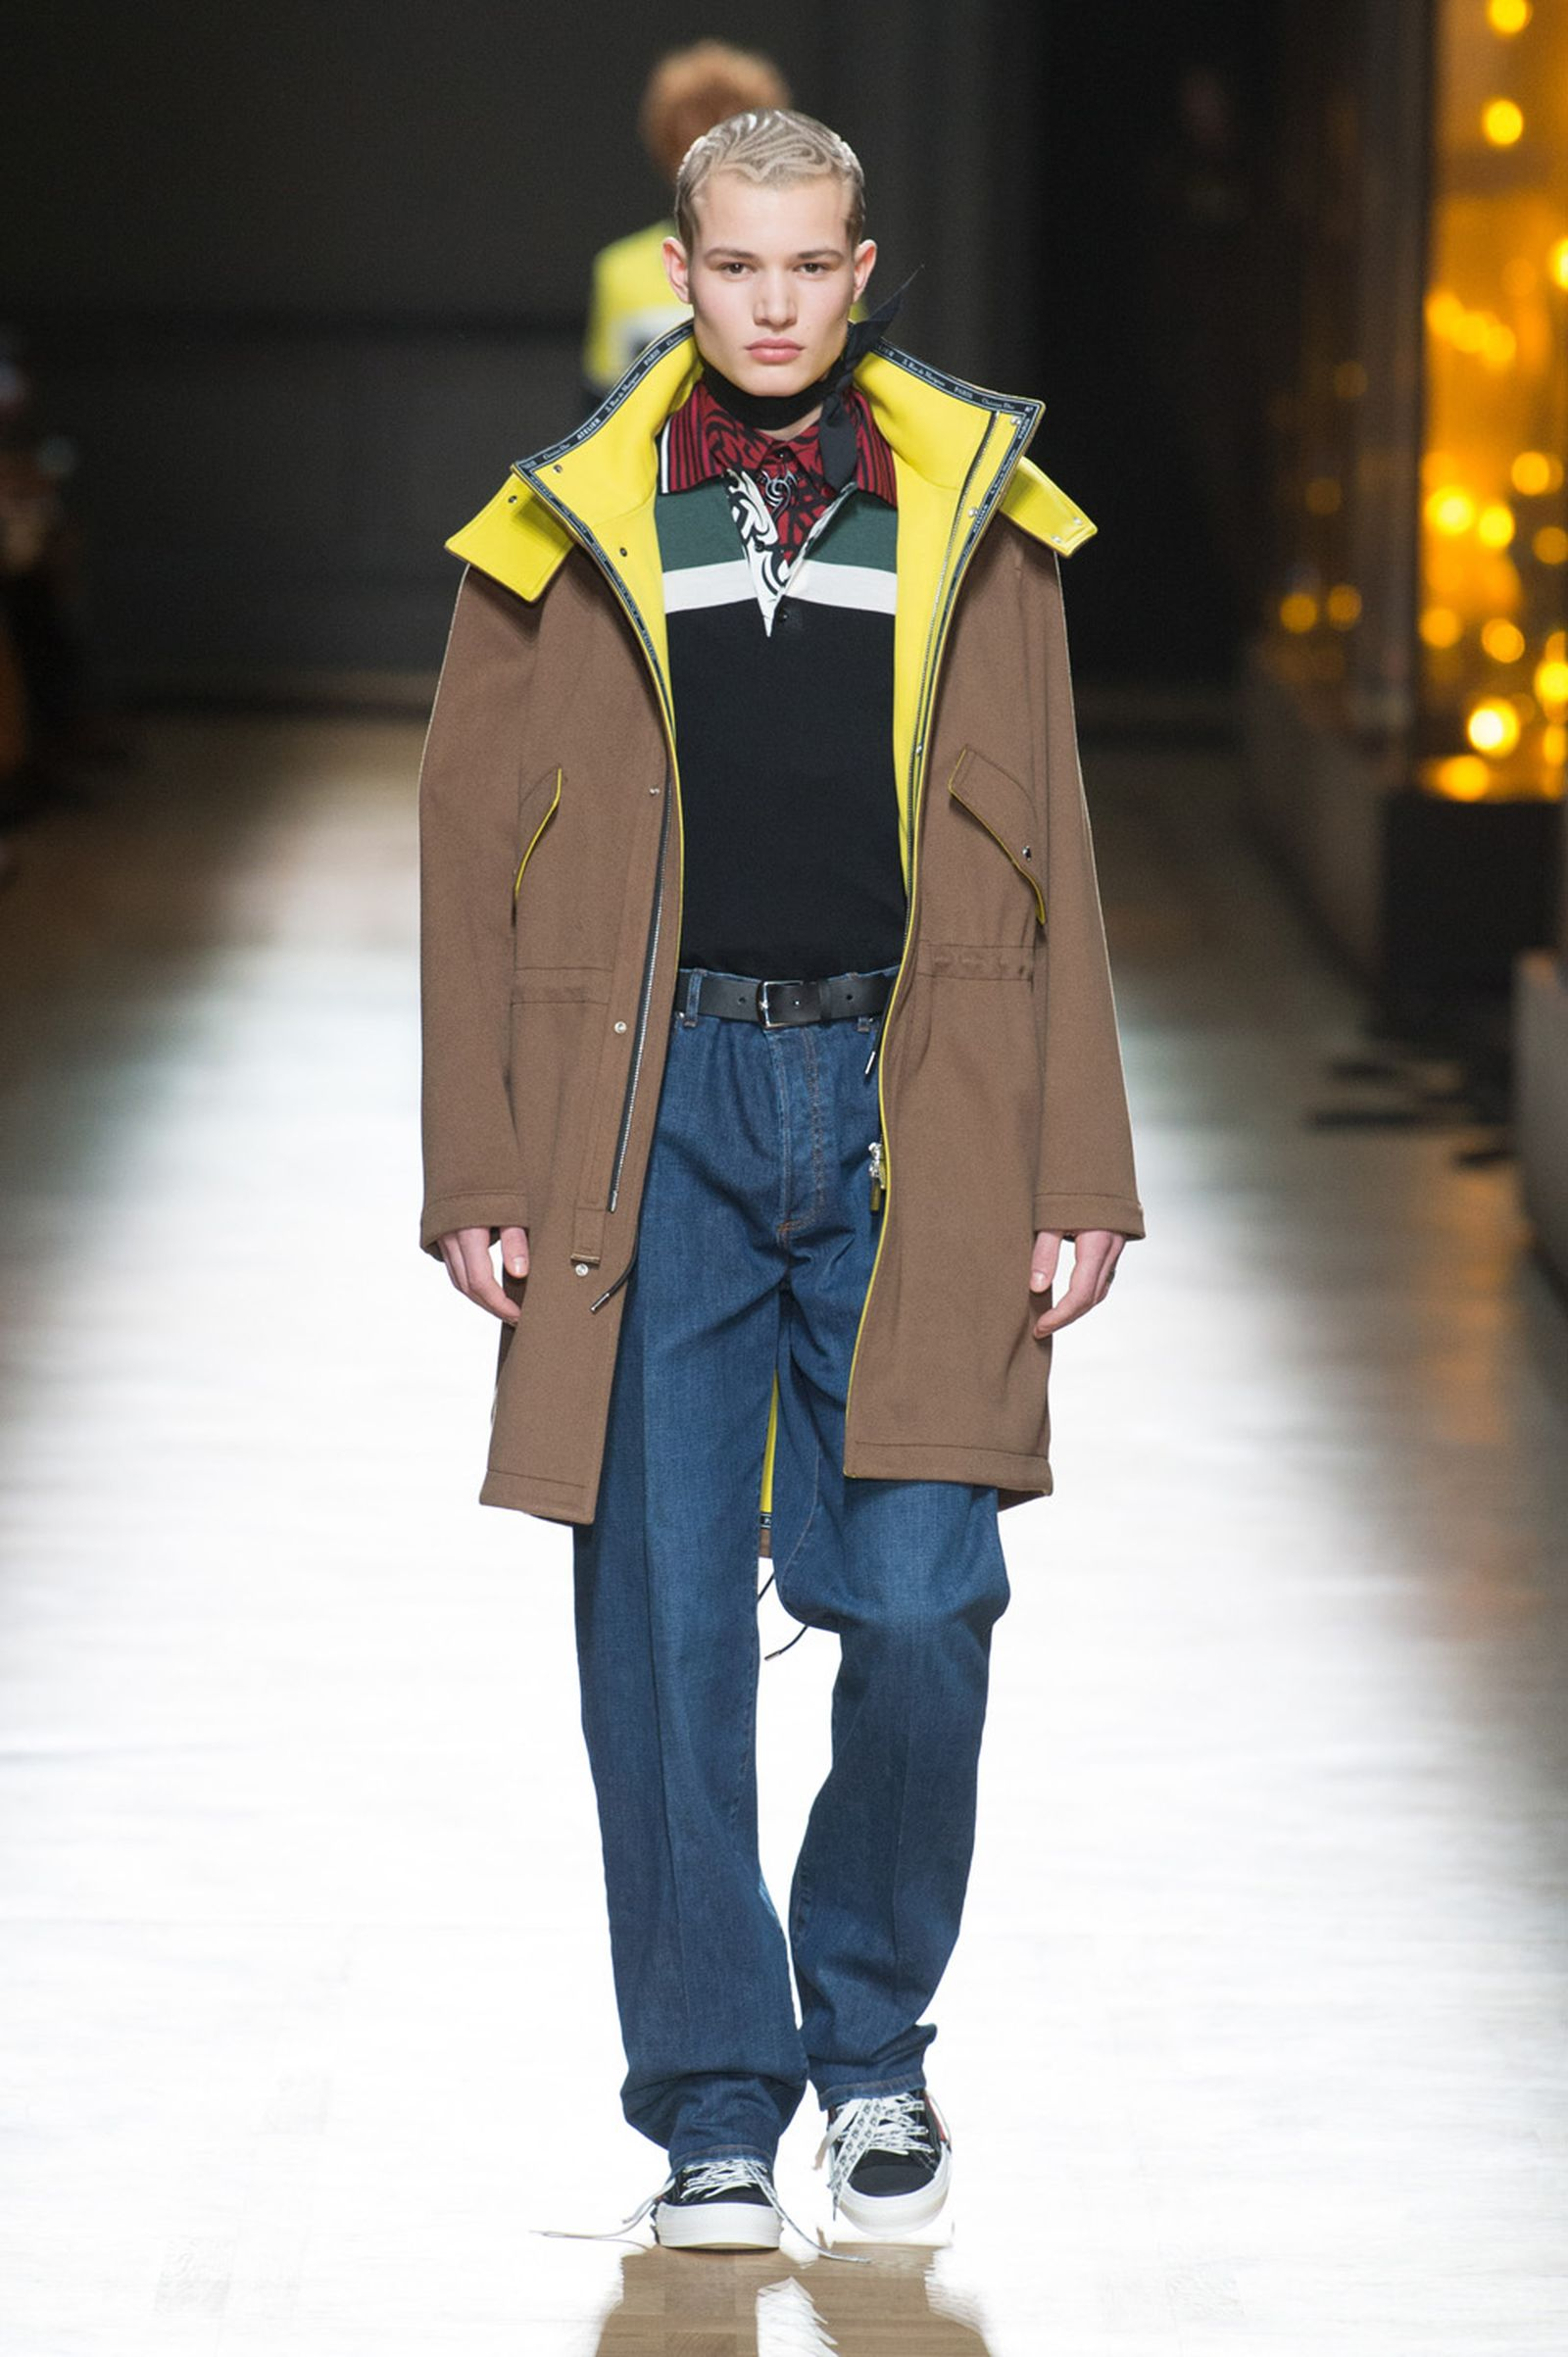 DIOR HOMME WINTER 18 19 BY PATRICE STABLE look33 Fall/WInter 2018 runway